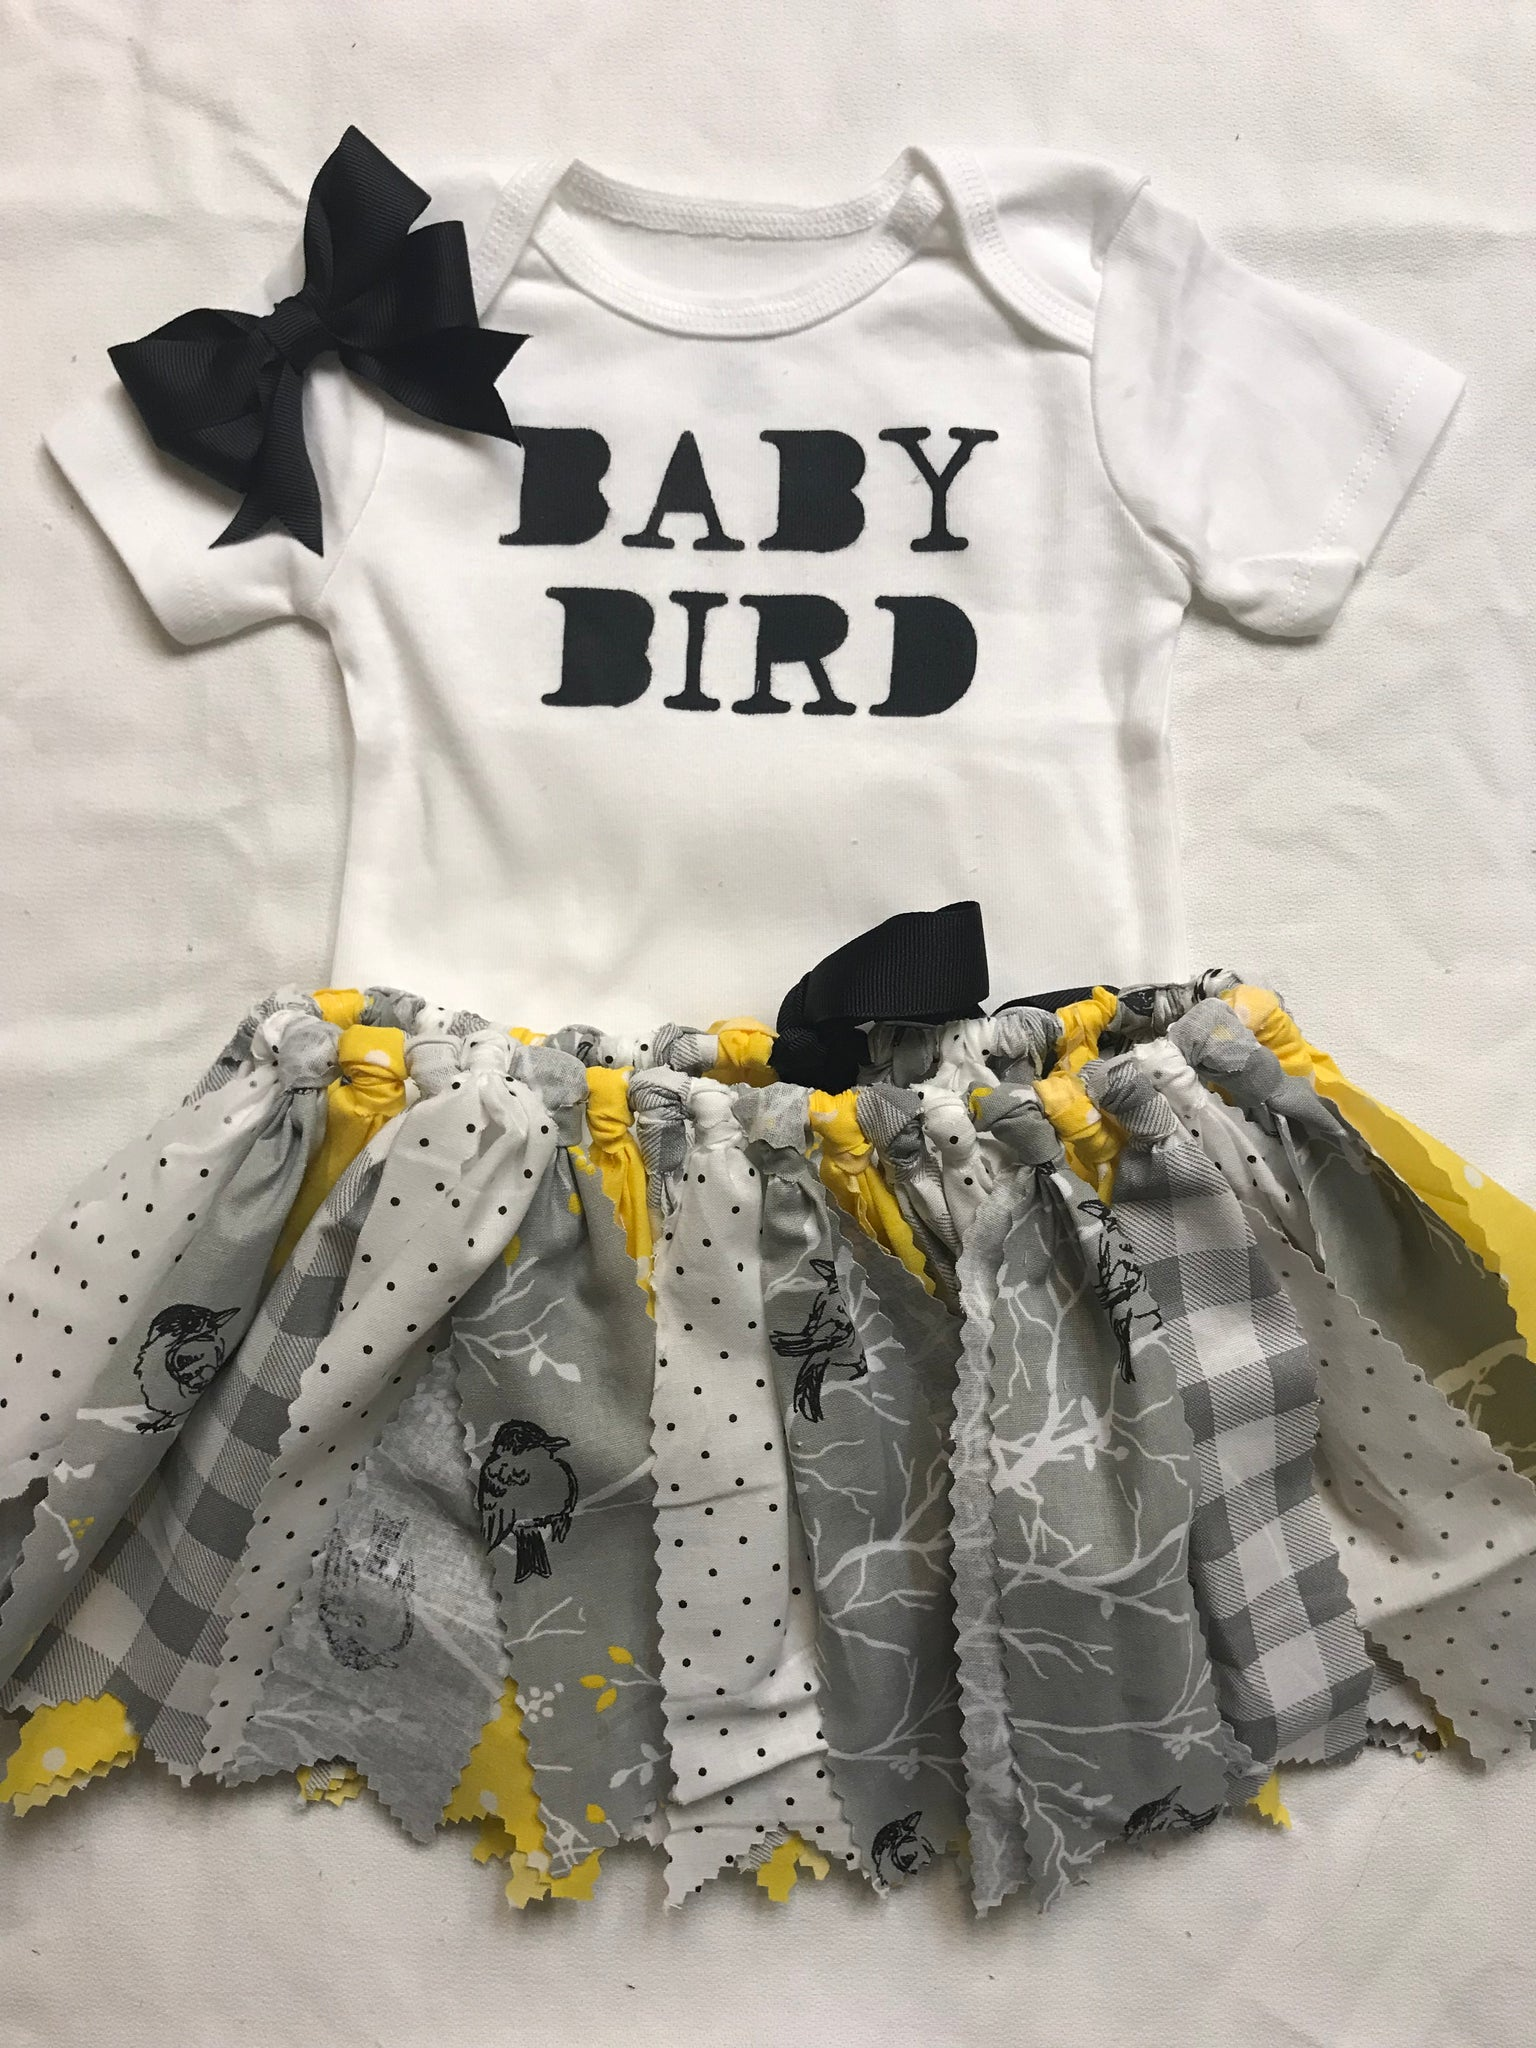 Baby bird outfit